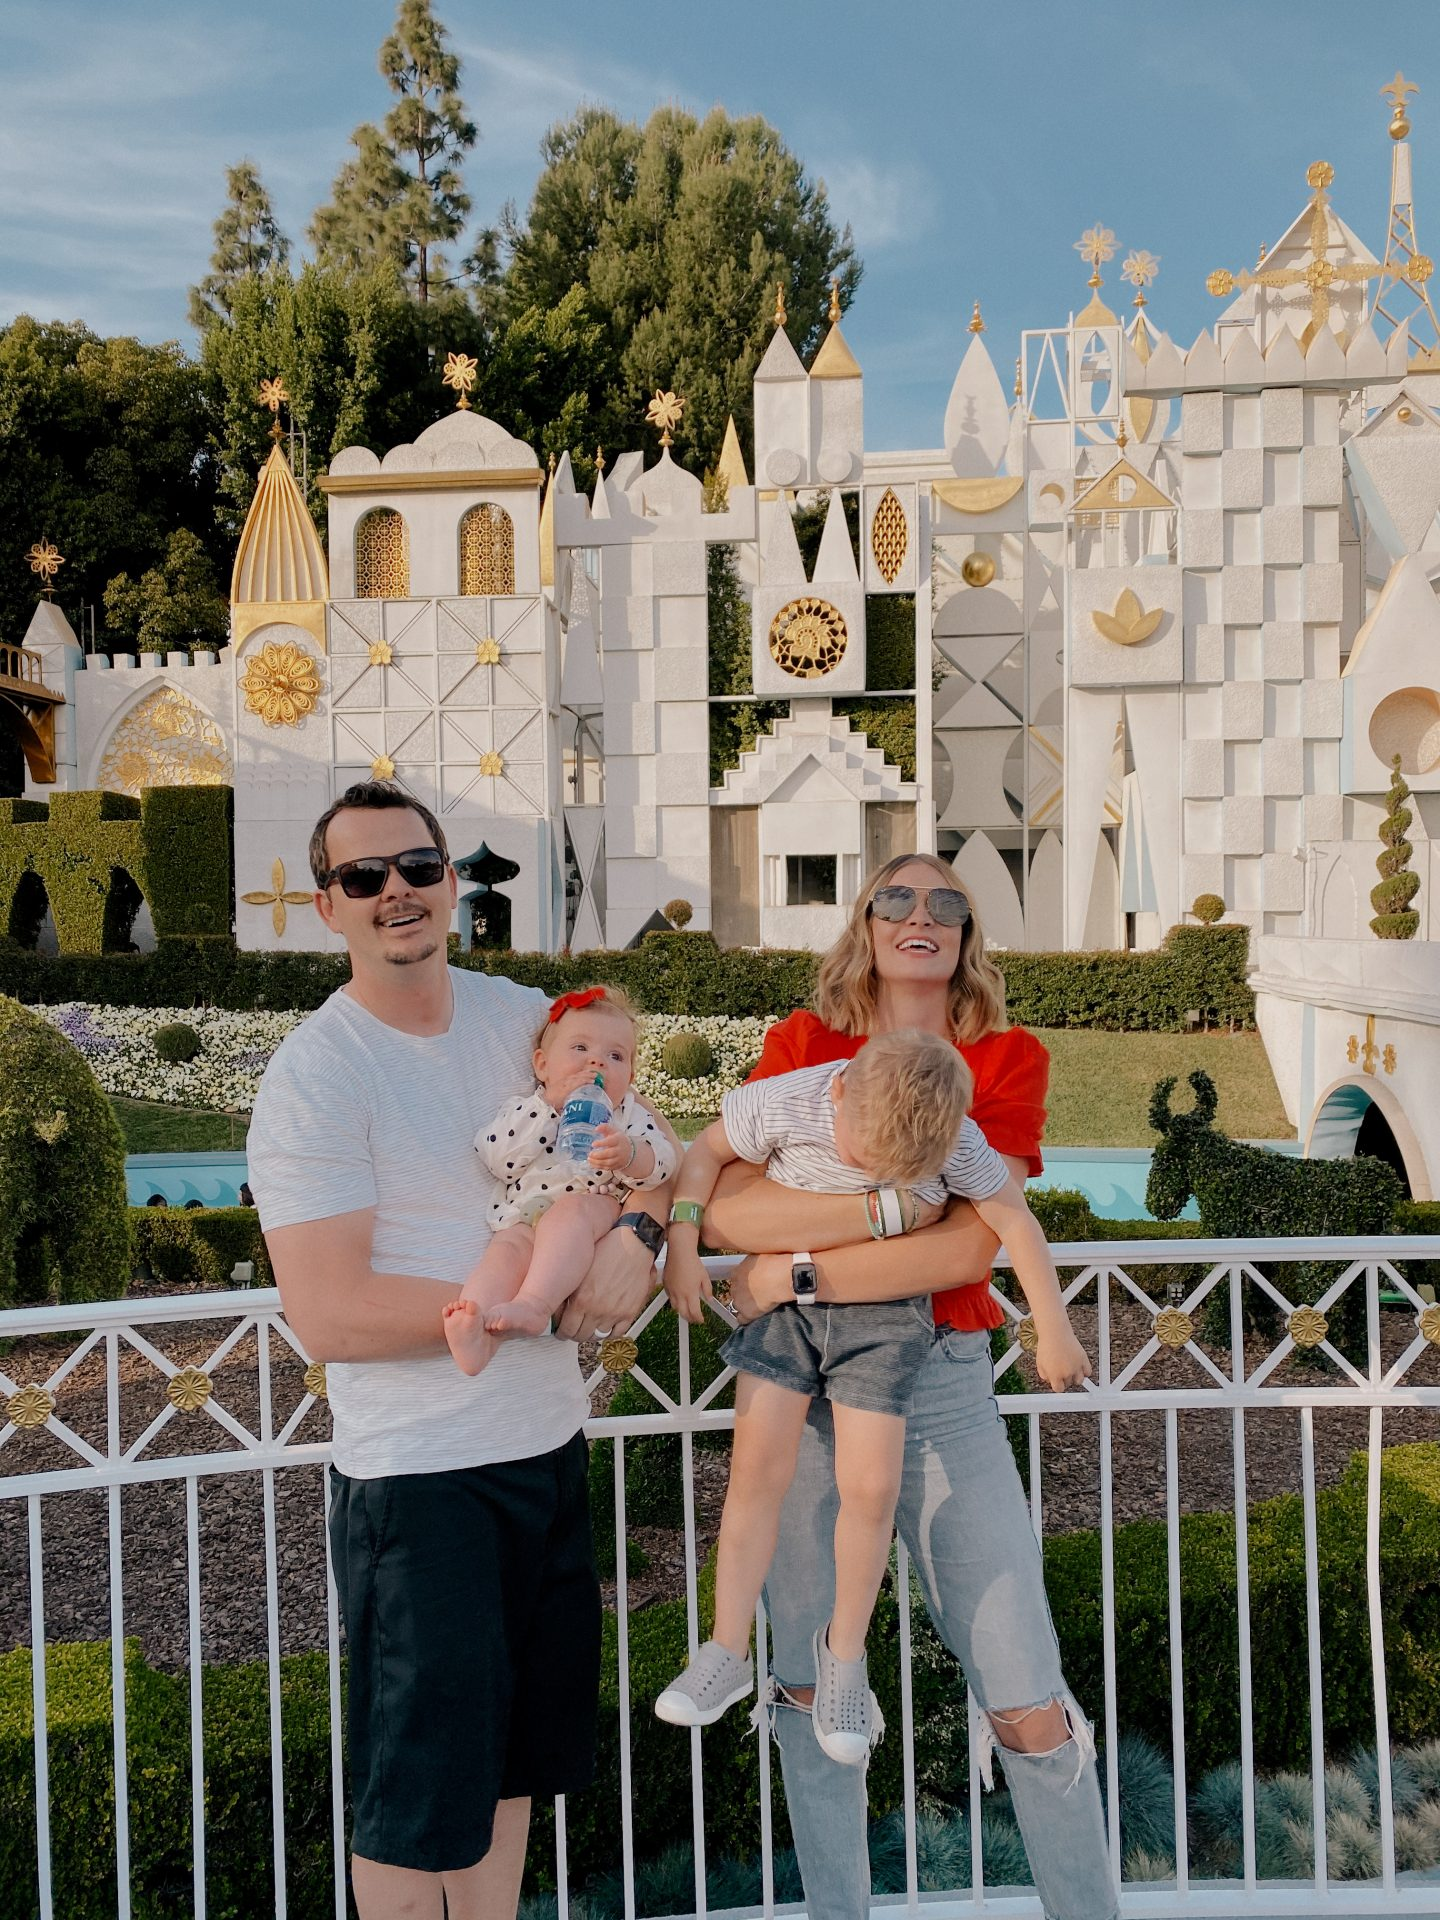 TOP 10 BEST DISNEYLAND TIPS FOR YOUR FAMILY featured by top San Diego blog, Navy Grace | Disneyland Tips by popular San Diego lifestyle blog, Navy Grace: image of a mom and dad holding their kids in front of the It's a Small World ride at Disneyland.